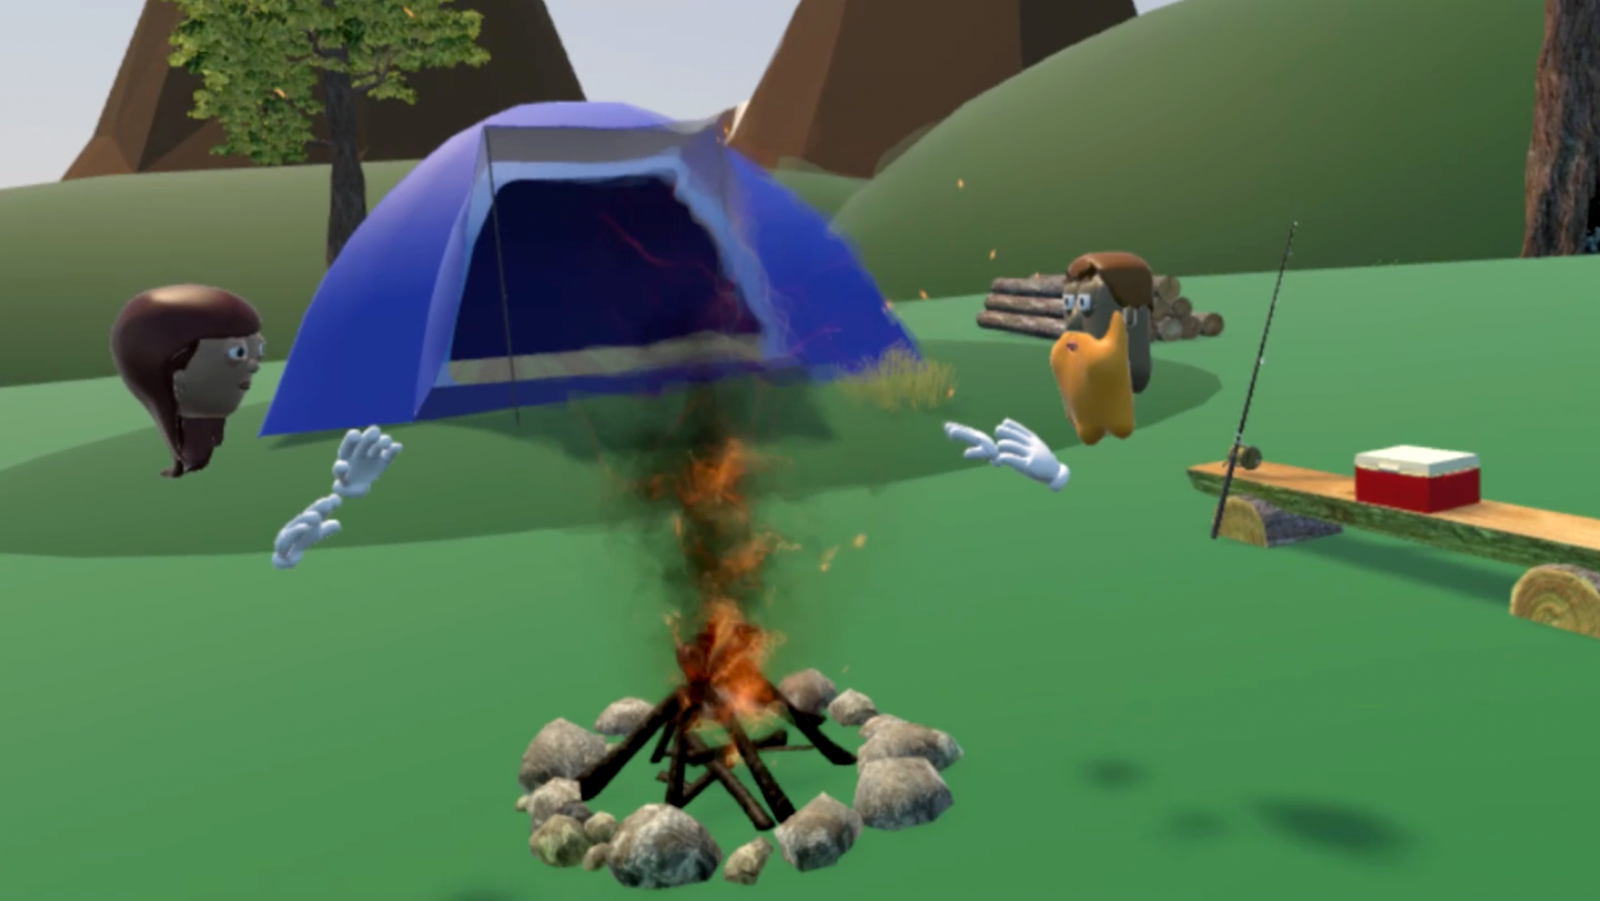 Back To Life Back To Reality >> MetaWorld hands-on: Virtual reality social MMO brings escapism to a vast open-world playground